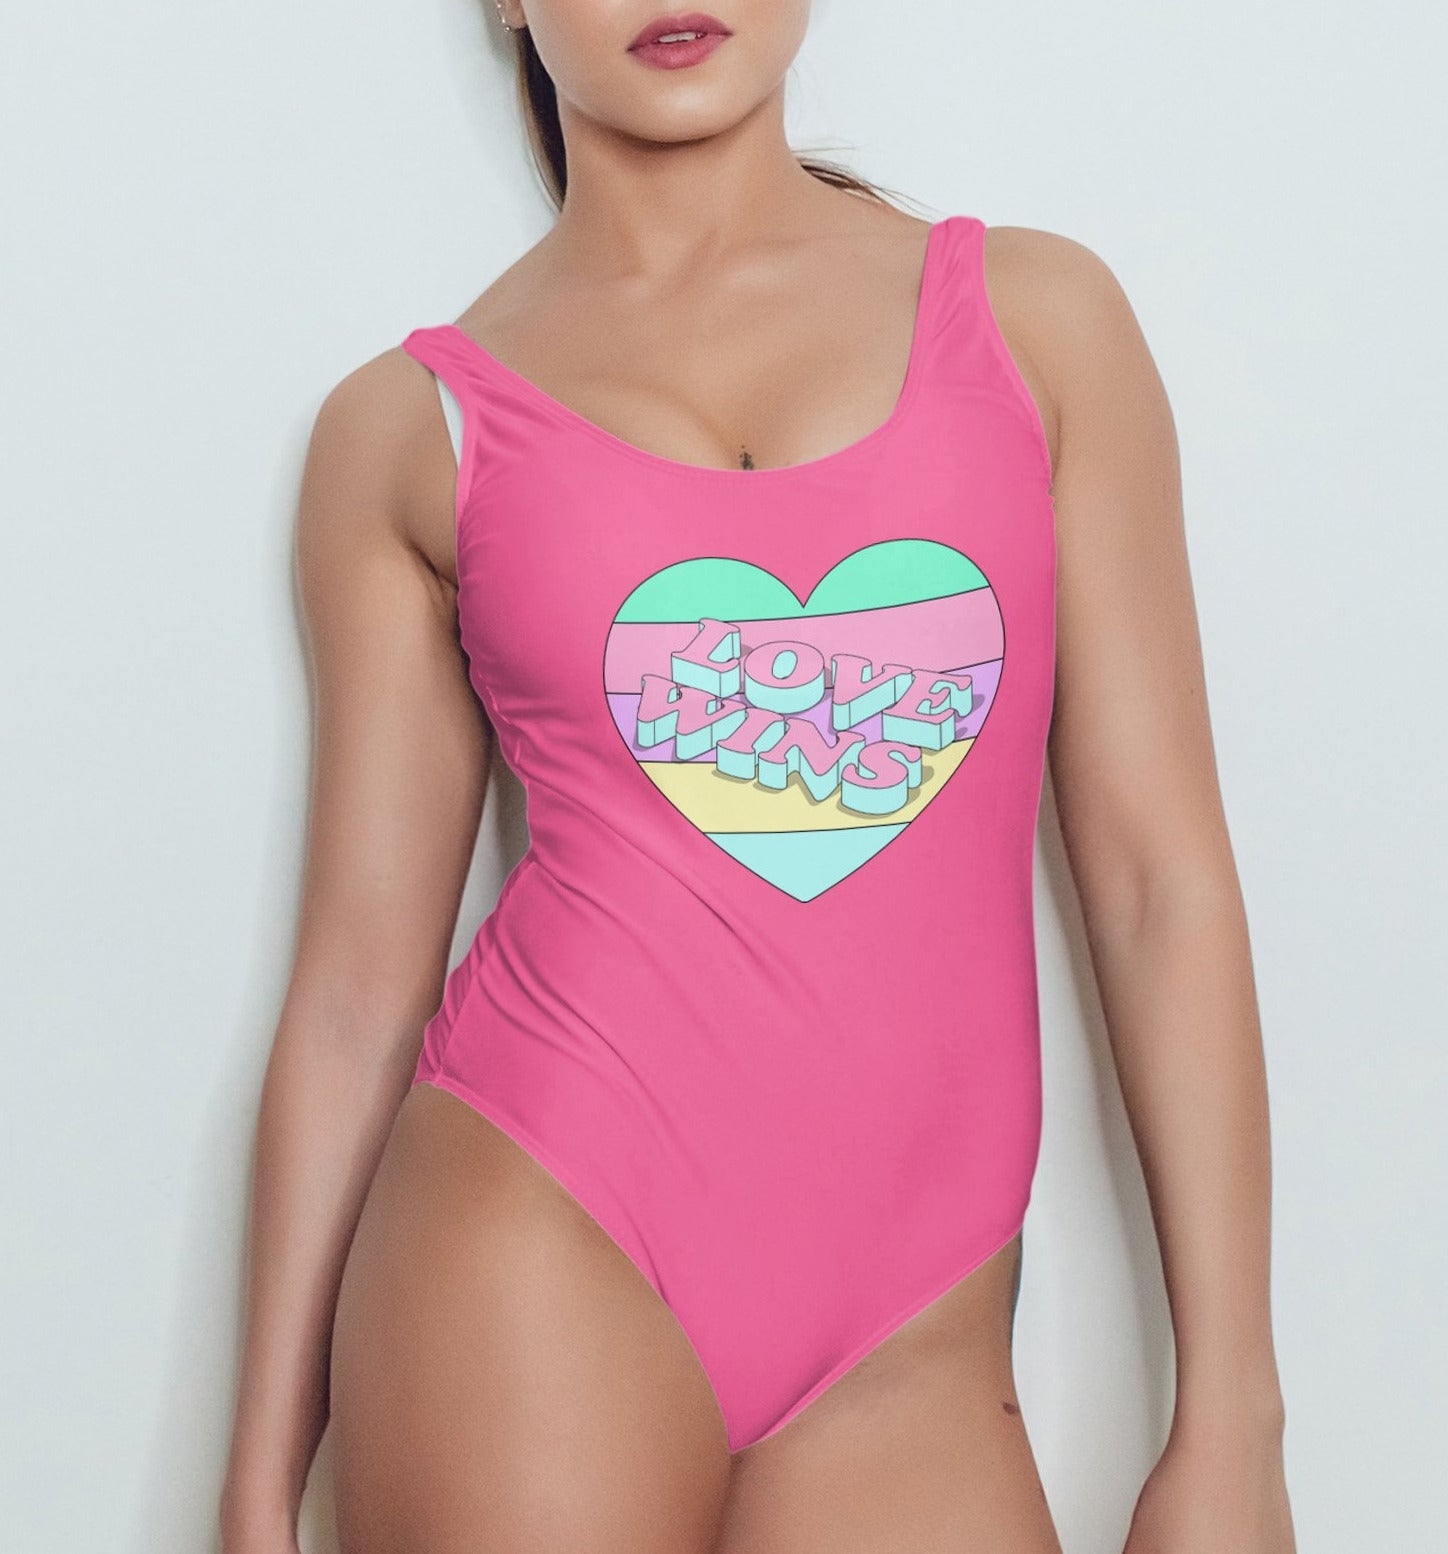 Hot pink swimsuit with a rainbow pastel heart saying love wins - HighCiti